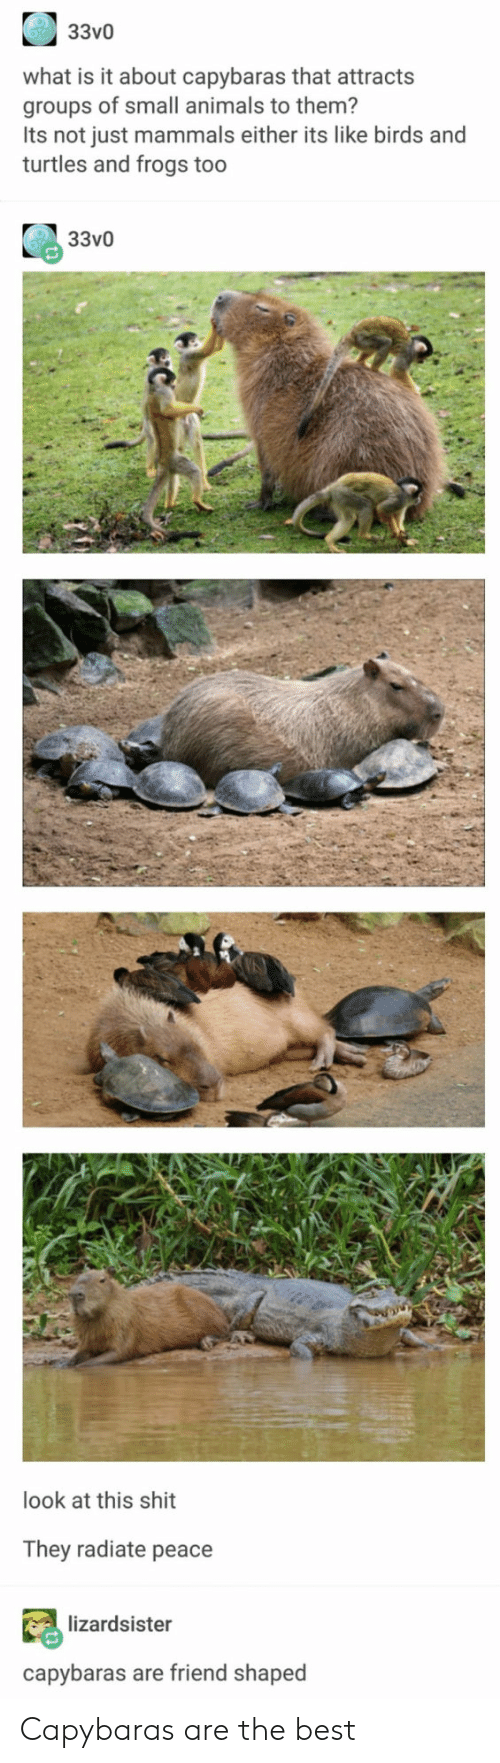 Animals, Shit, and Best: 33v0  what is it about capybaras that attracts  groups of small animals to them?  Its not just mammals either its like birds and  turtles and frogs too  33v0  look at this shit  They radiate peace  lizardsister  capybaras are friend shaped Capybaras are the best